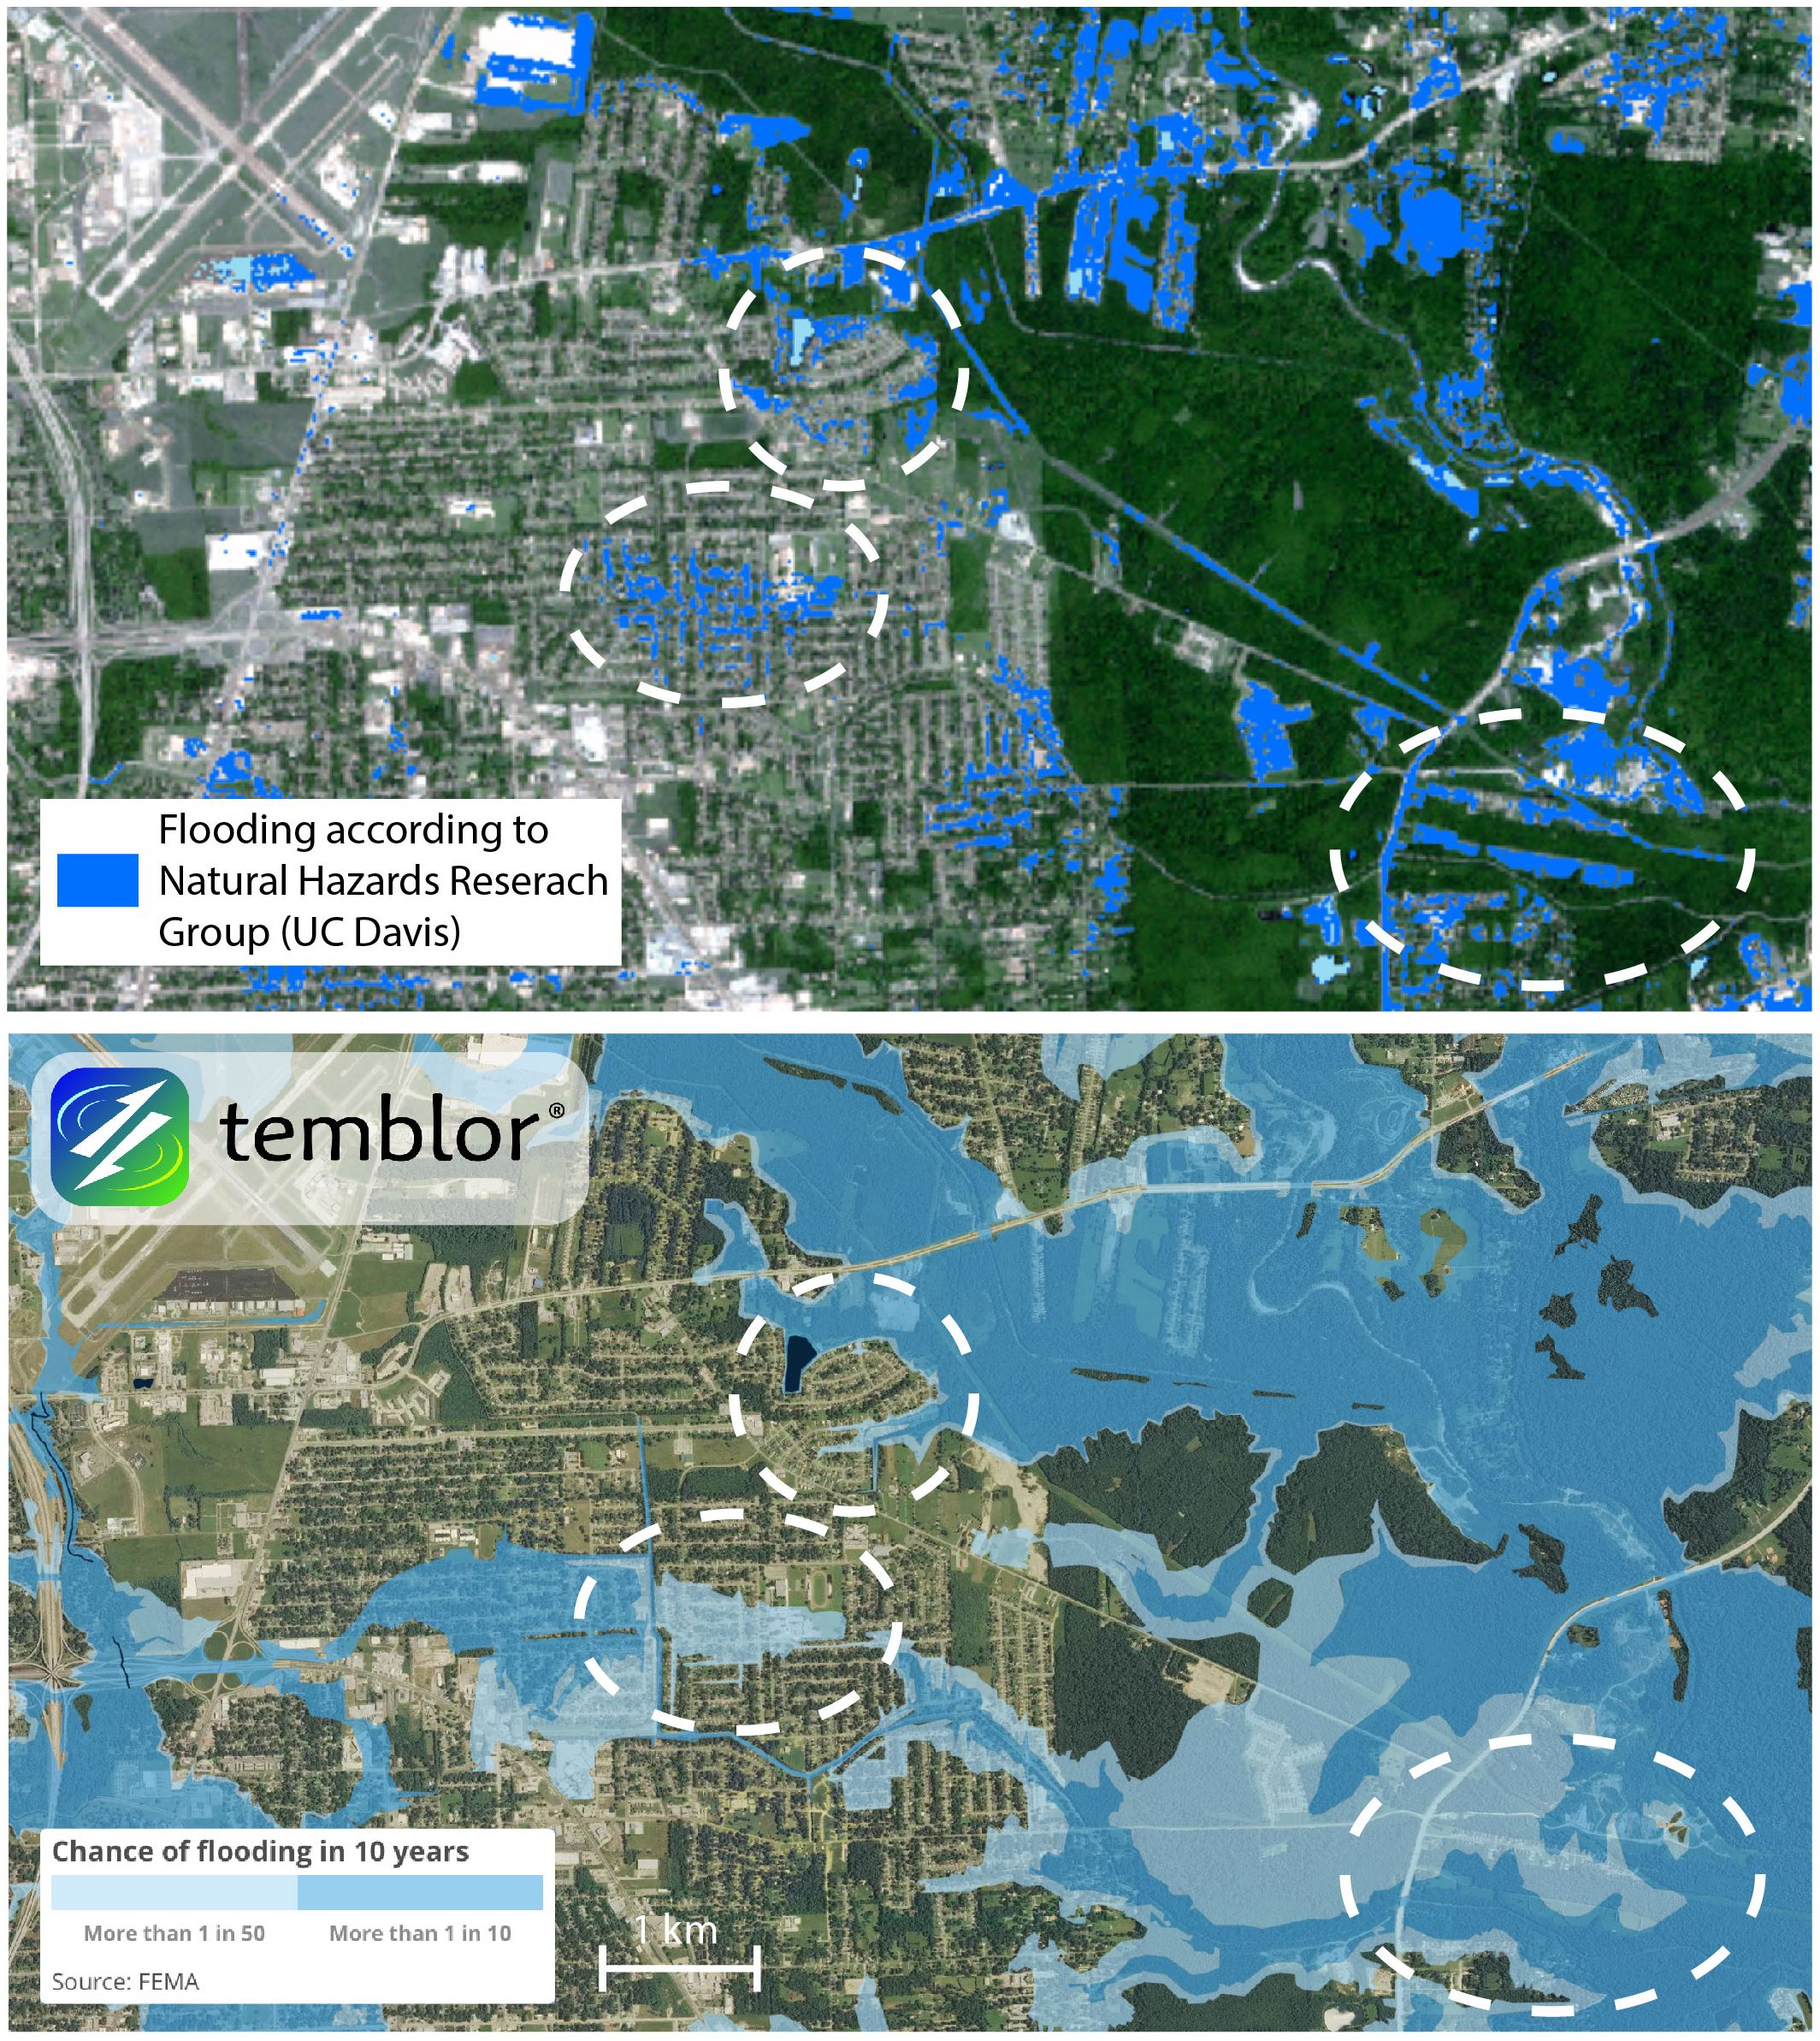 These comparison maps also show where flooding occurred (top), and where FEMA forecasts there is a 1% chance per year of flooding (bottom).